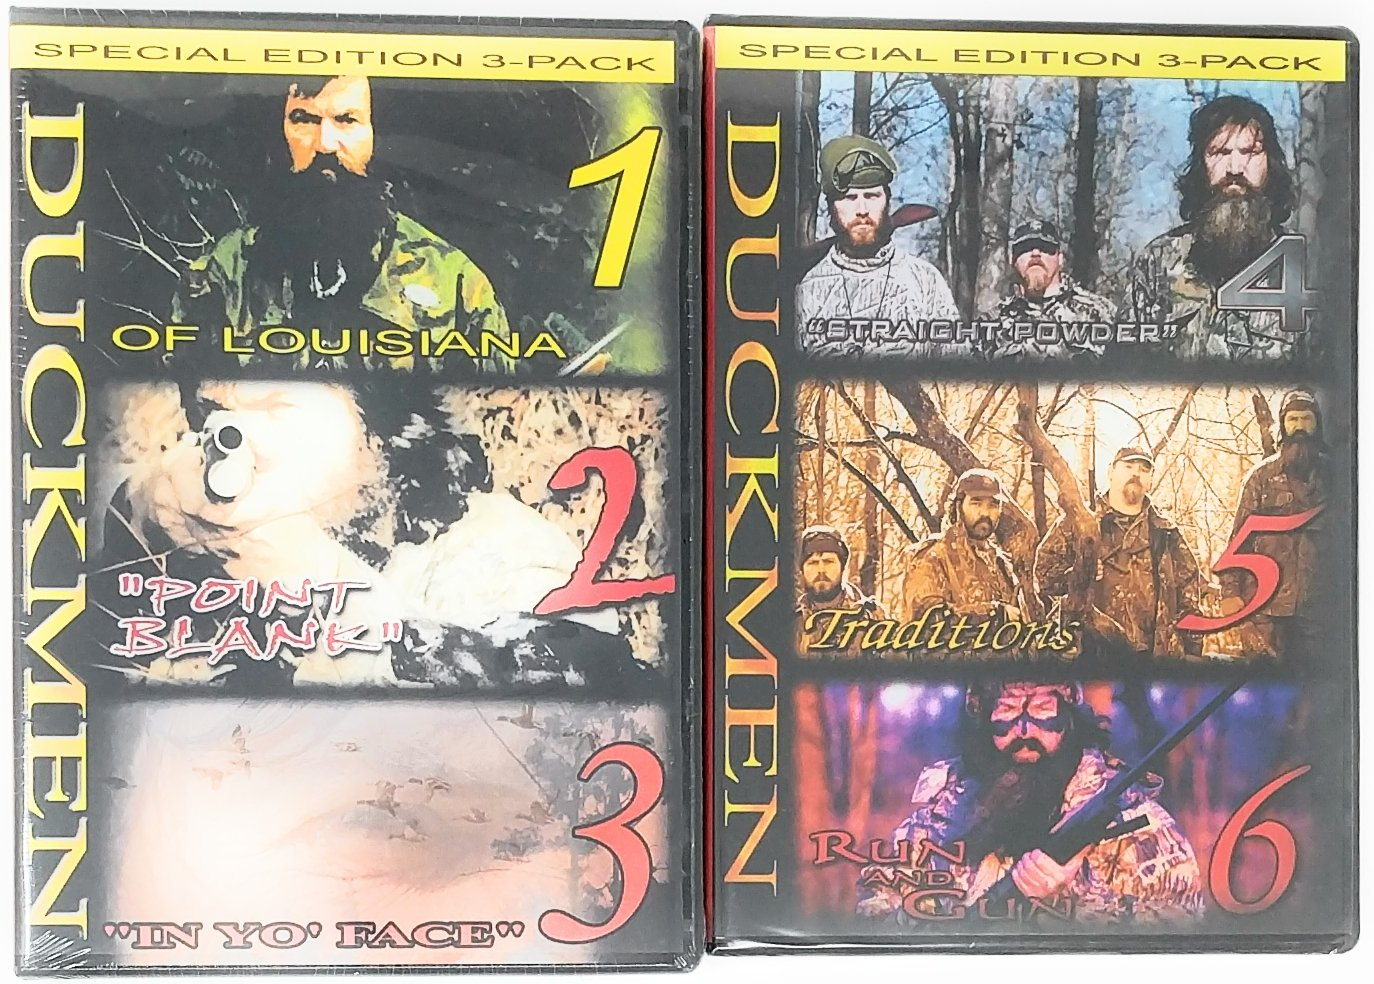 DUCK COMMANDER 1, 2, 3, 4, 5, 6 Combo Pack of Duckmen Hunting DVD, of Louisiana, Point Blank, in Yo Face, Straight Powder, Traditions, Run and Gun (1,2,3,4,5,6 Combo Pack)